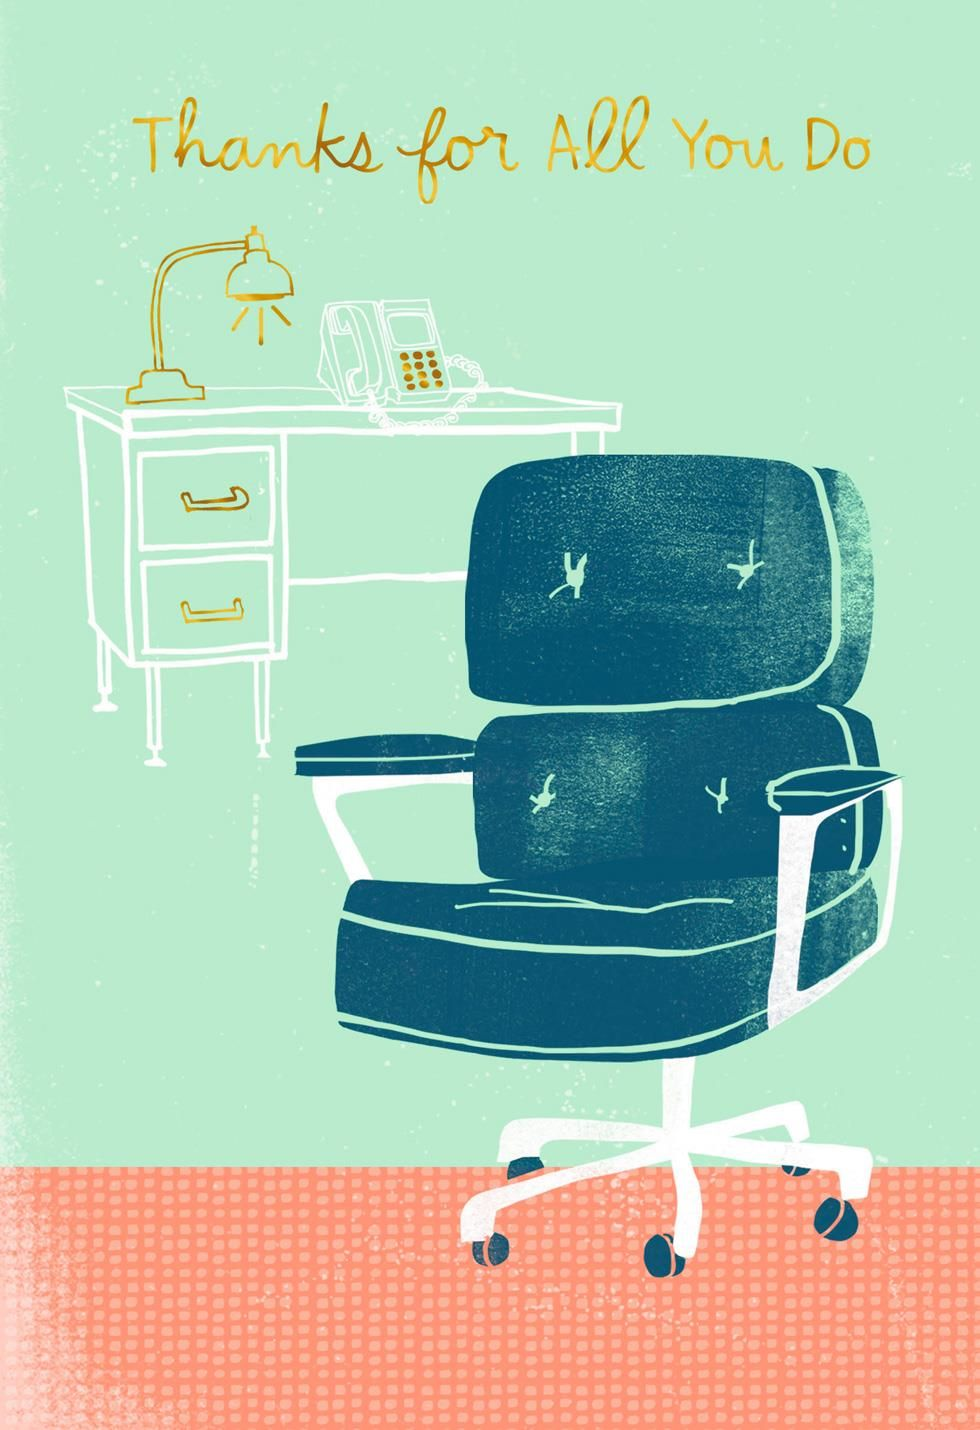 classy chair logo design. Celebrate your secretary with candid appreciation in this classy  Administrative Assistant greeting Card features sketch Office Chair Admin Professionals Day Candid Appreciation